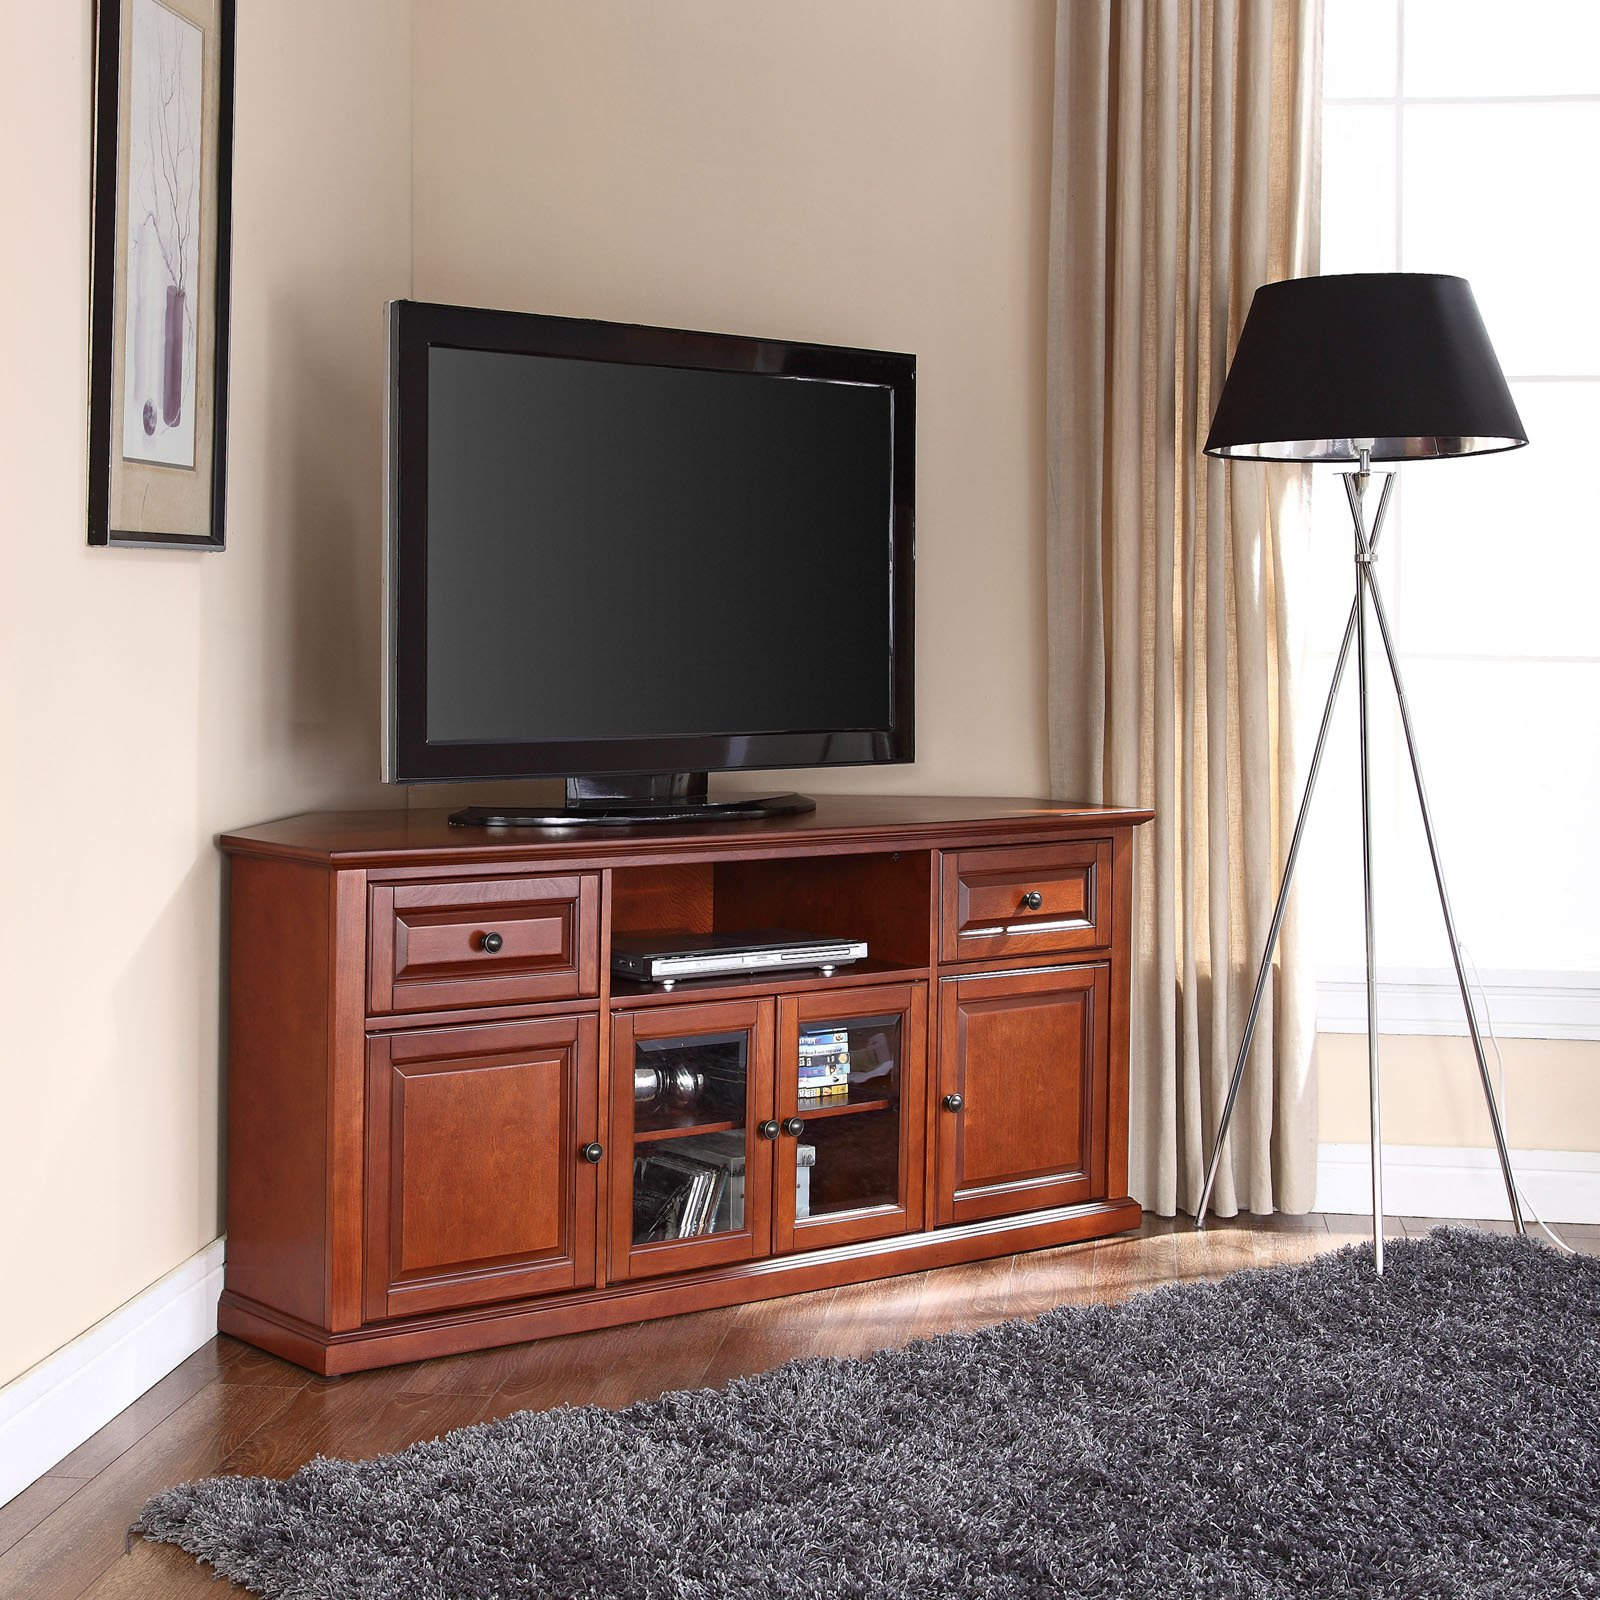 "Most Recent Crosley Furniture Corner Tv Stand For Tvs Up To 60"" – Walmart In Cornet Tv Stands (View 4 of 20)"